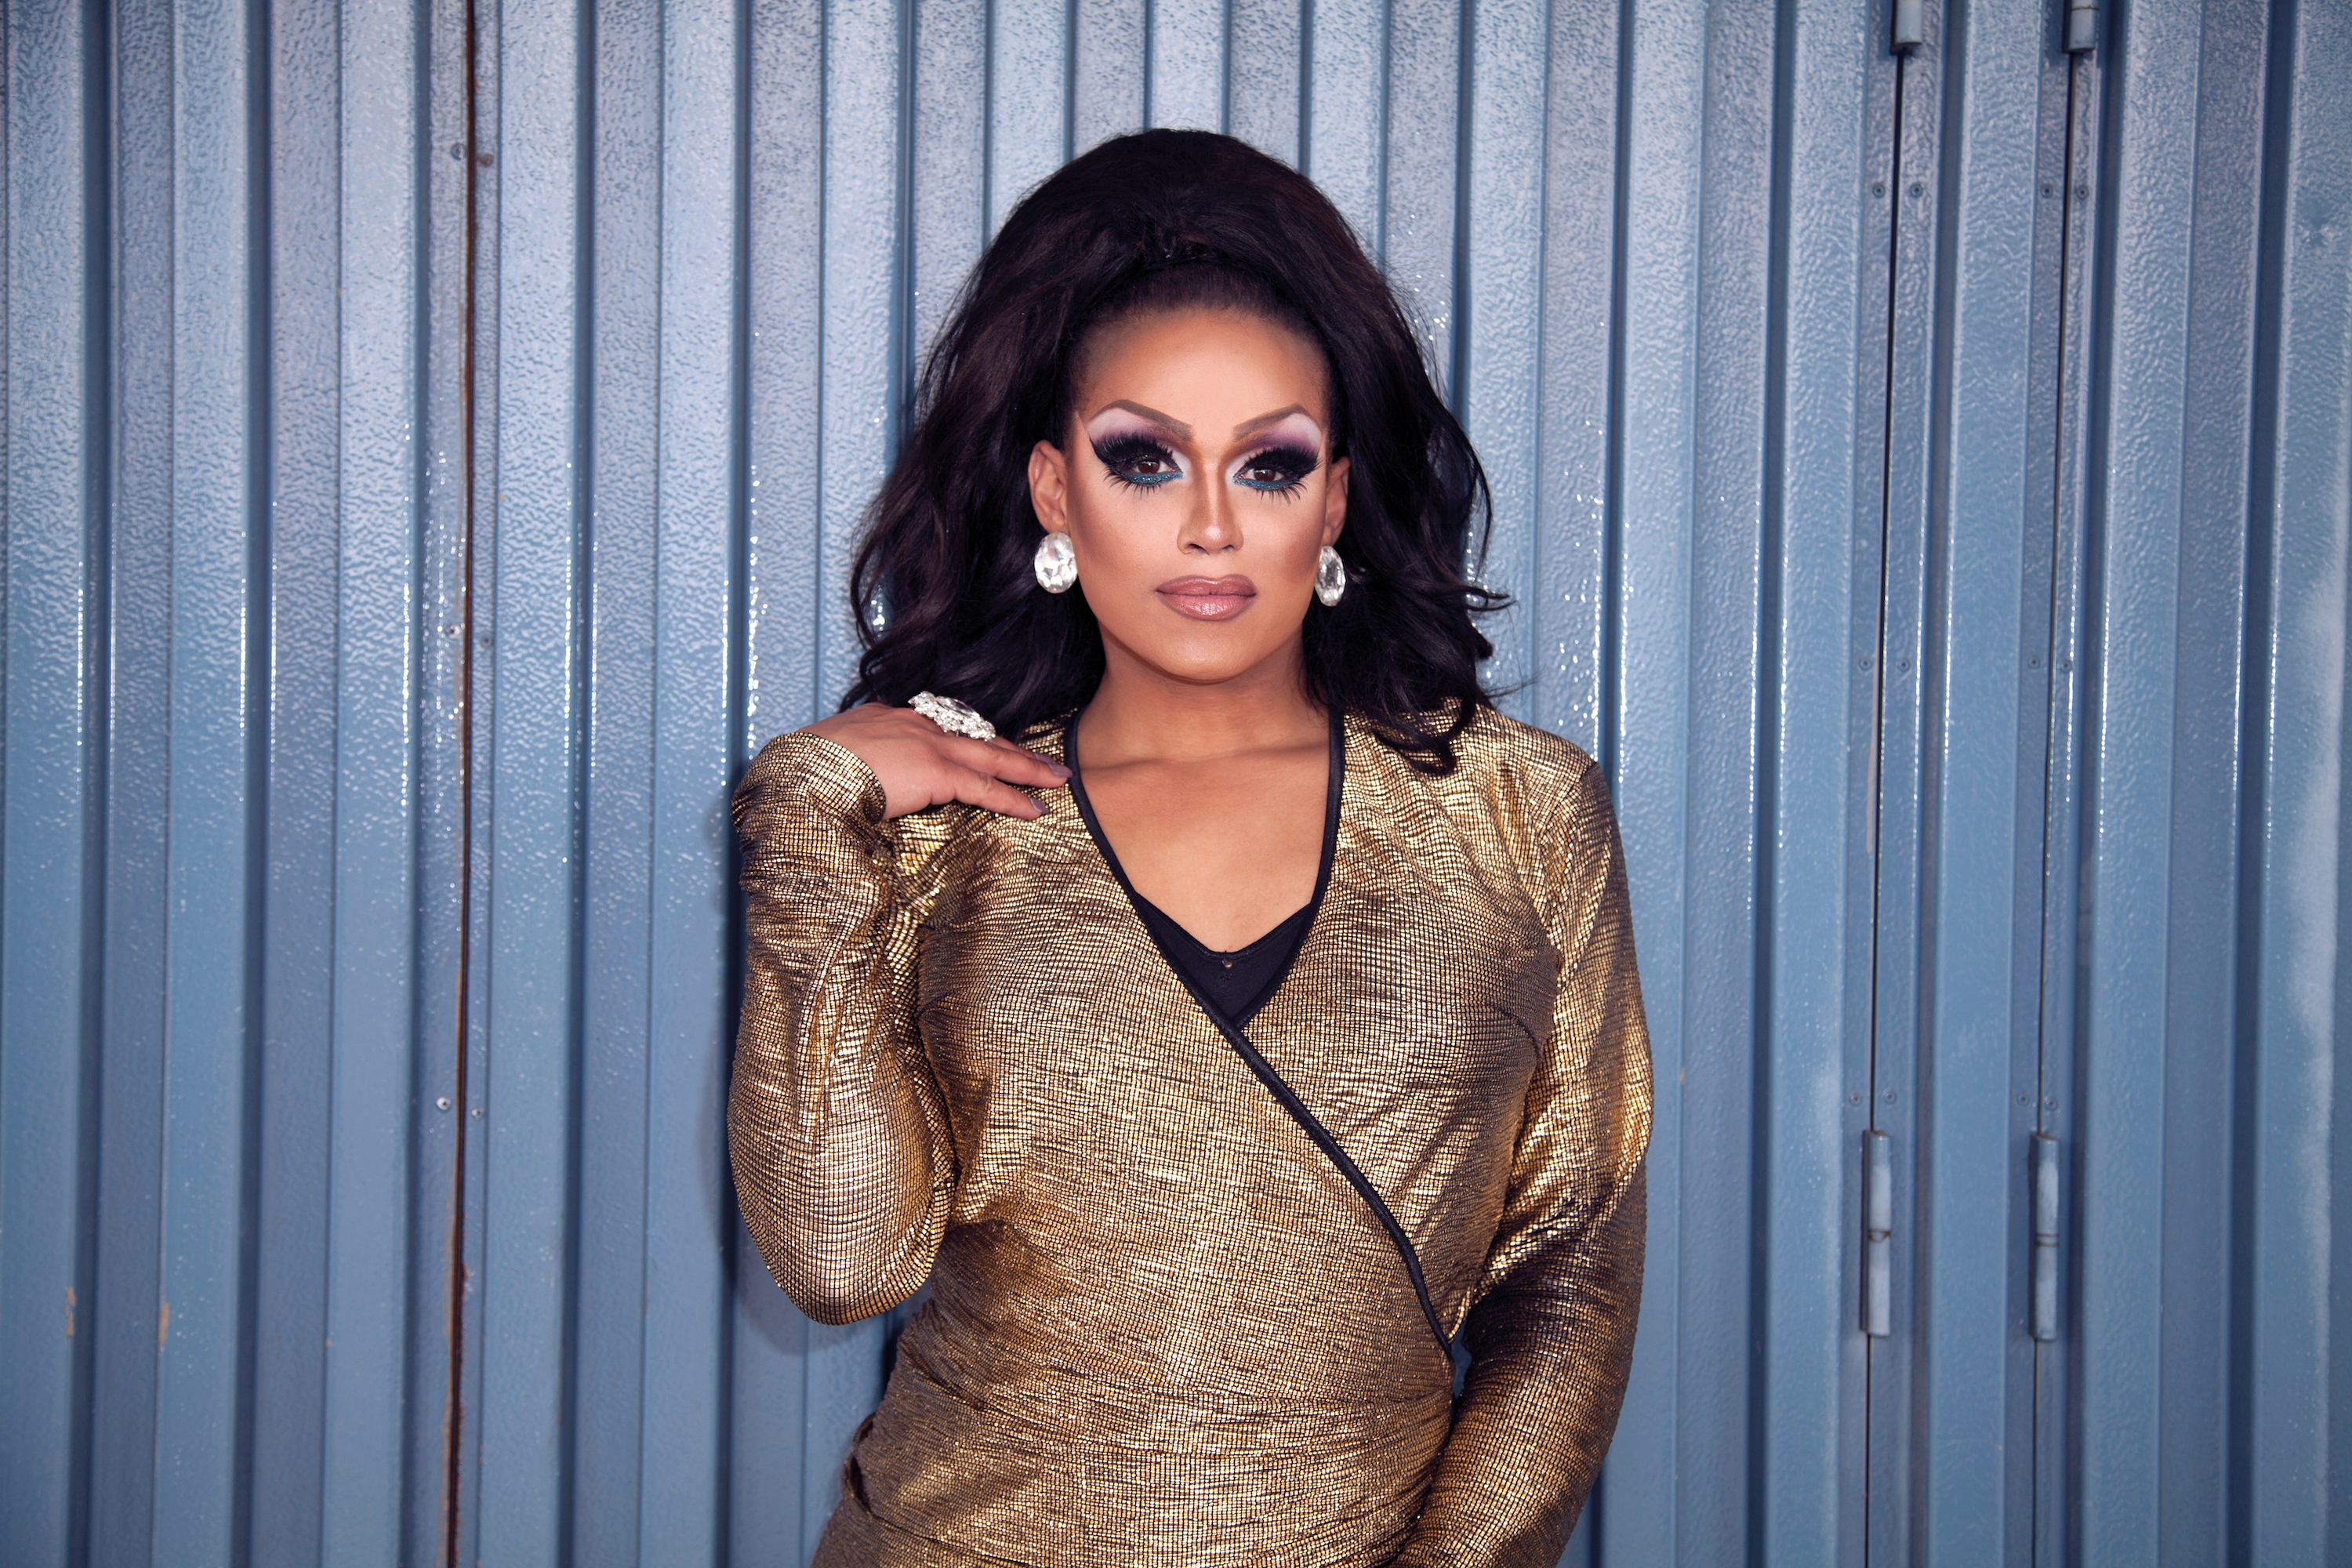 Alright Darling extract and photos featuring RuPaul's Drag